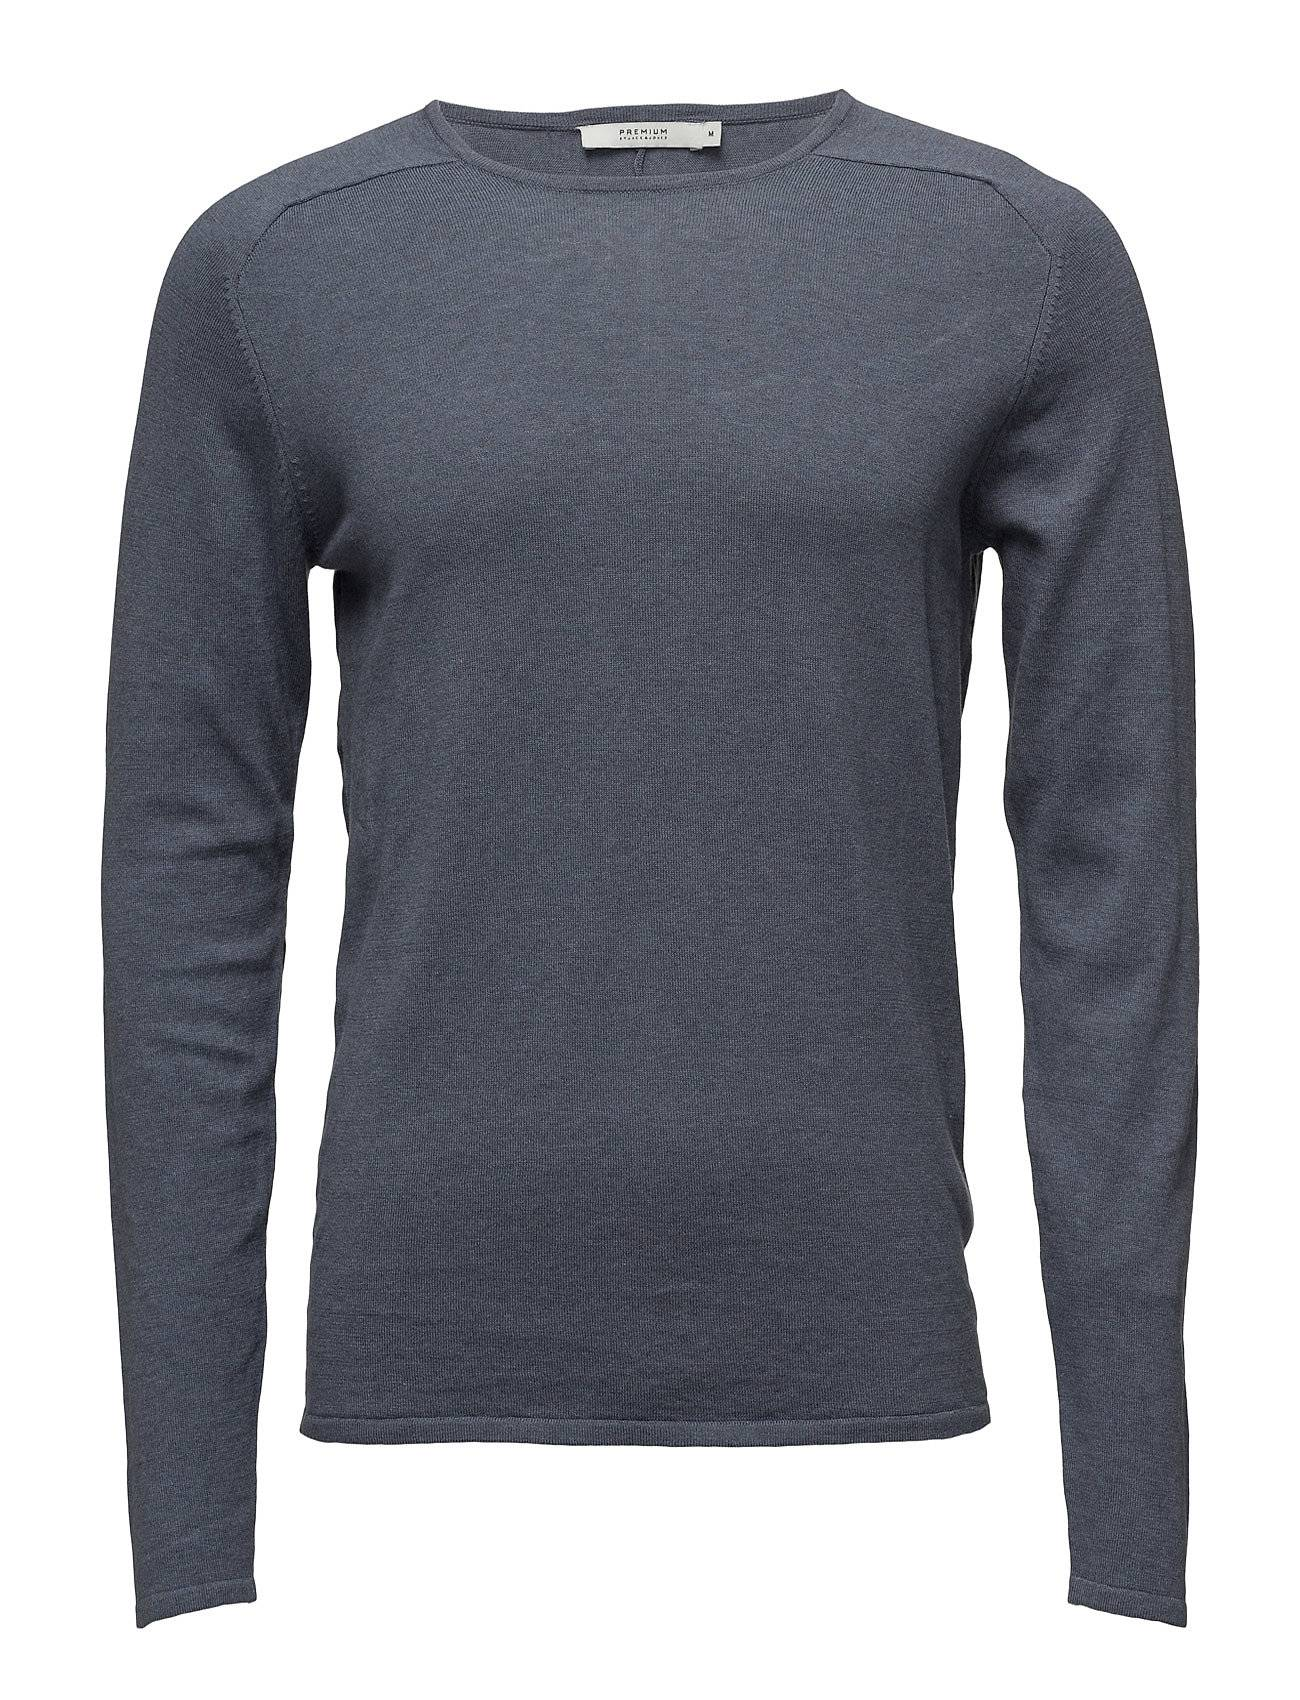 Jack & Jones Premium Jprmarvin Knit Crew Neck